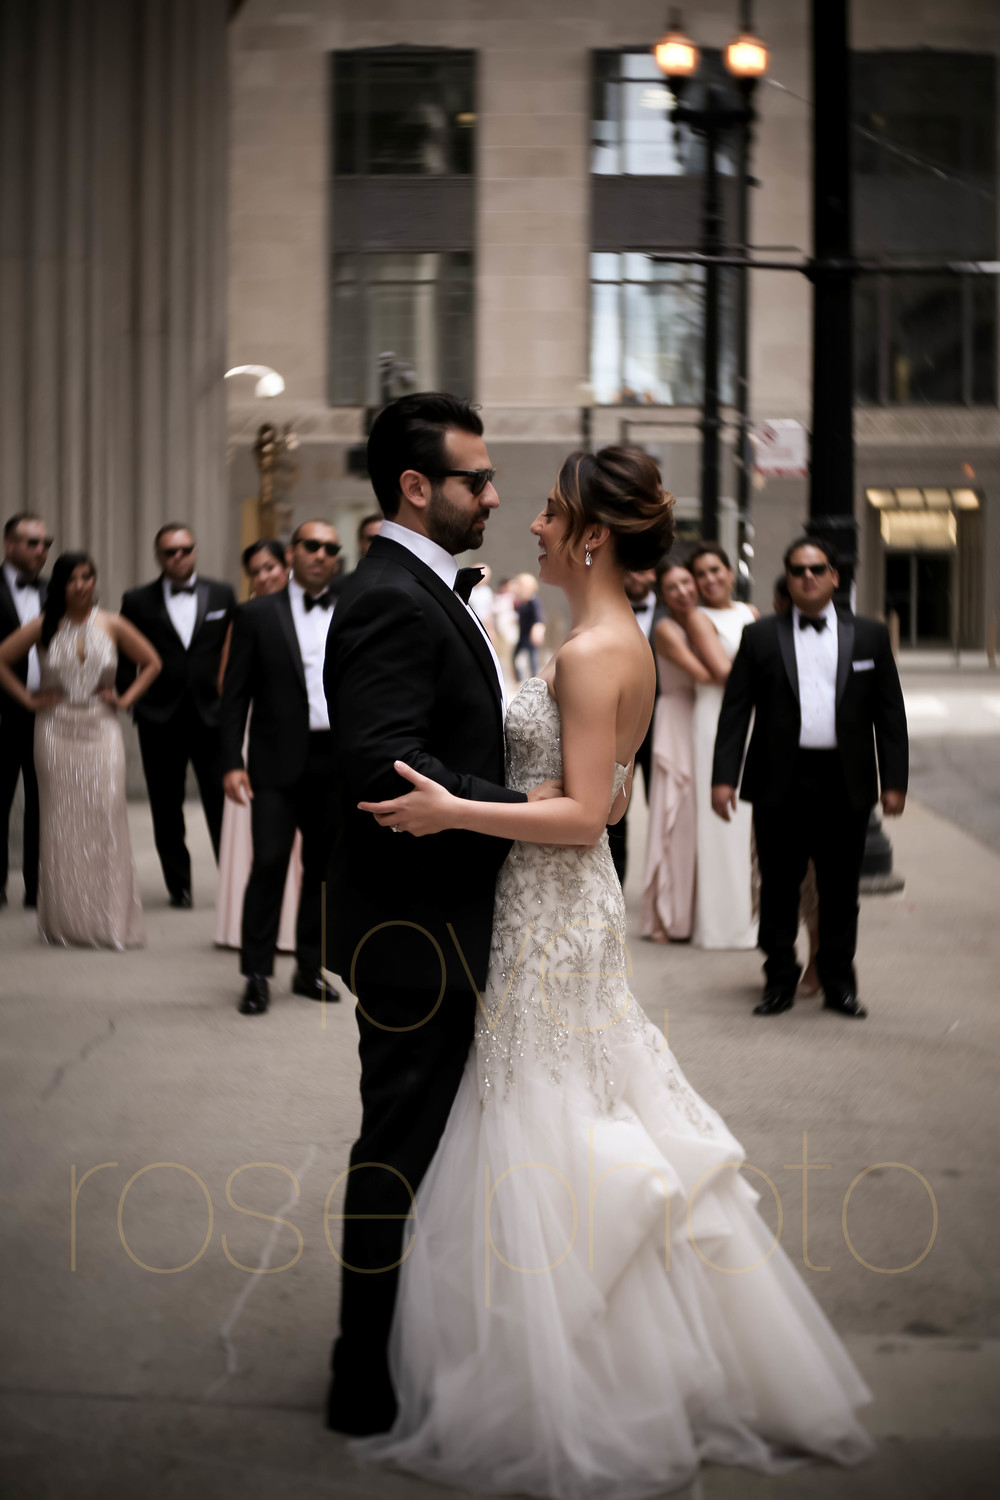 ornella + medhi gold coast west loop chicago wedding 3 arts club nelcotte rm champagne summer modern luxury wedding-24.jpg